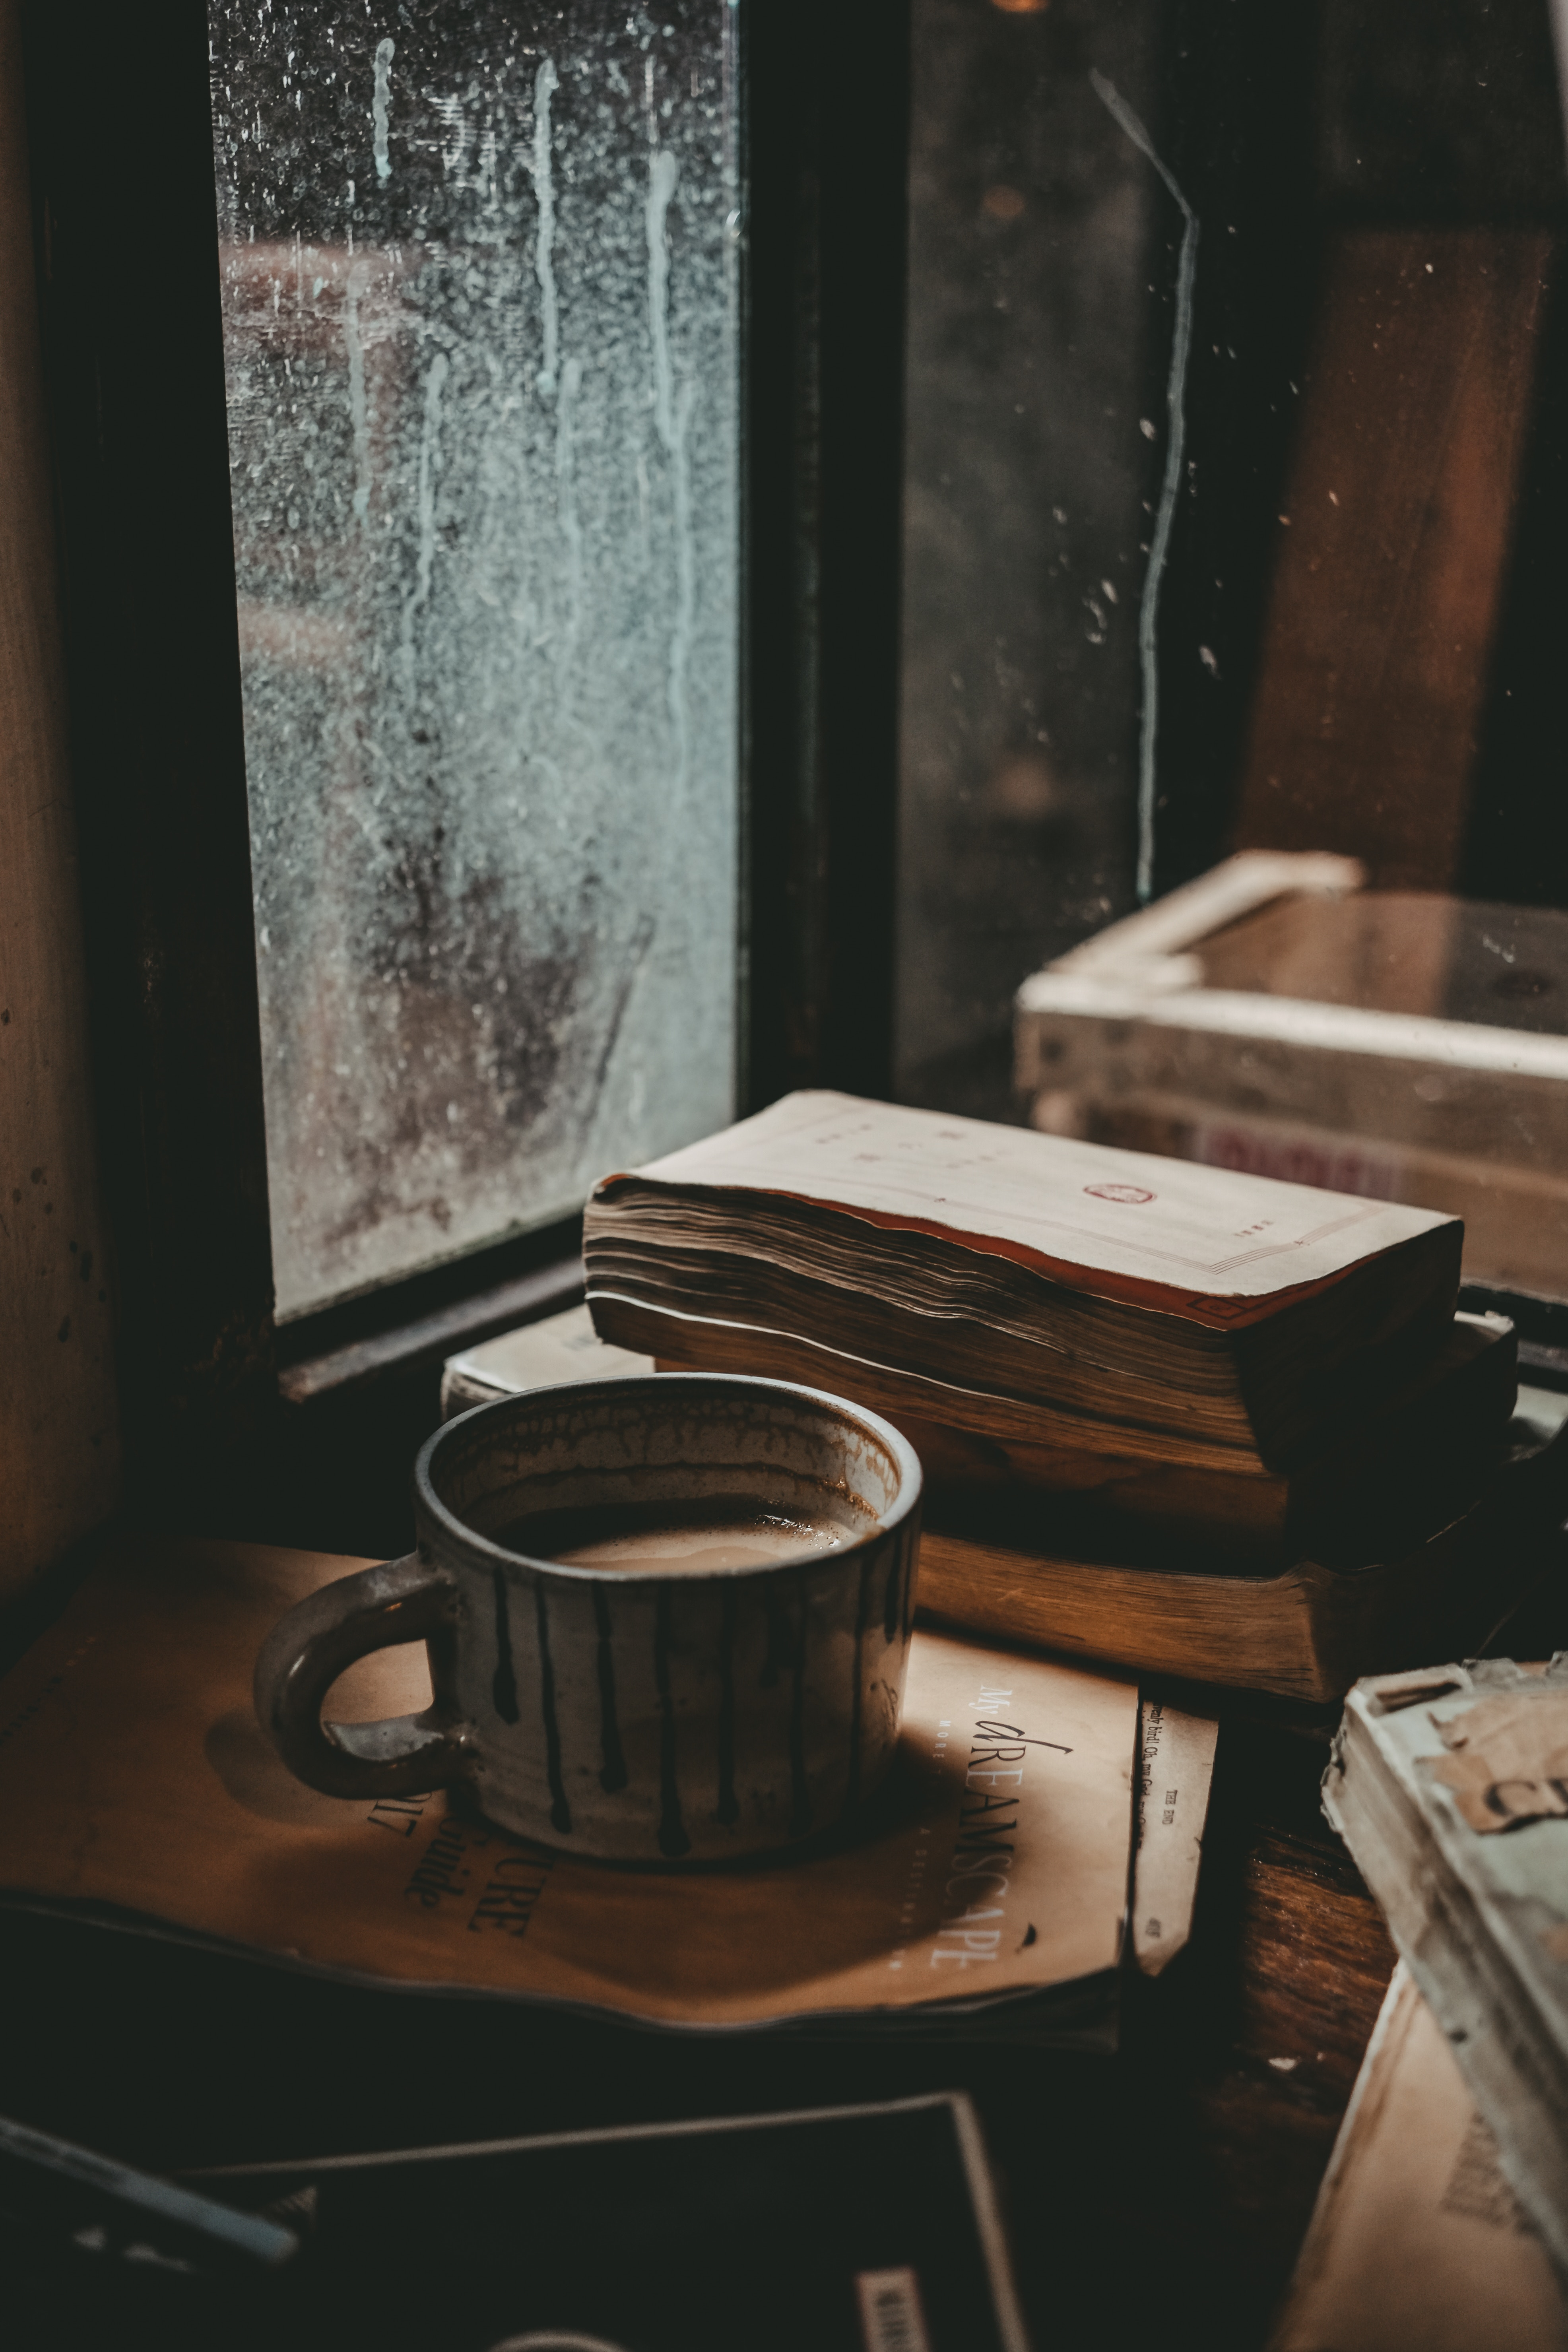 118820 download wallpaper Food, Cup, Mug, Books, Mood, Window, Autumn screensavers and pictures for free